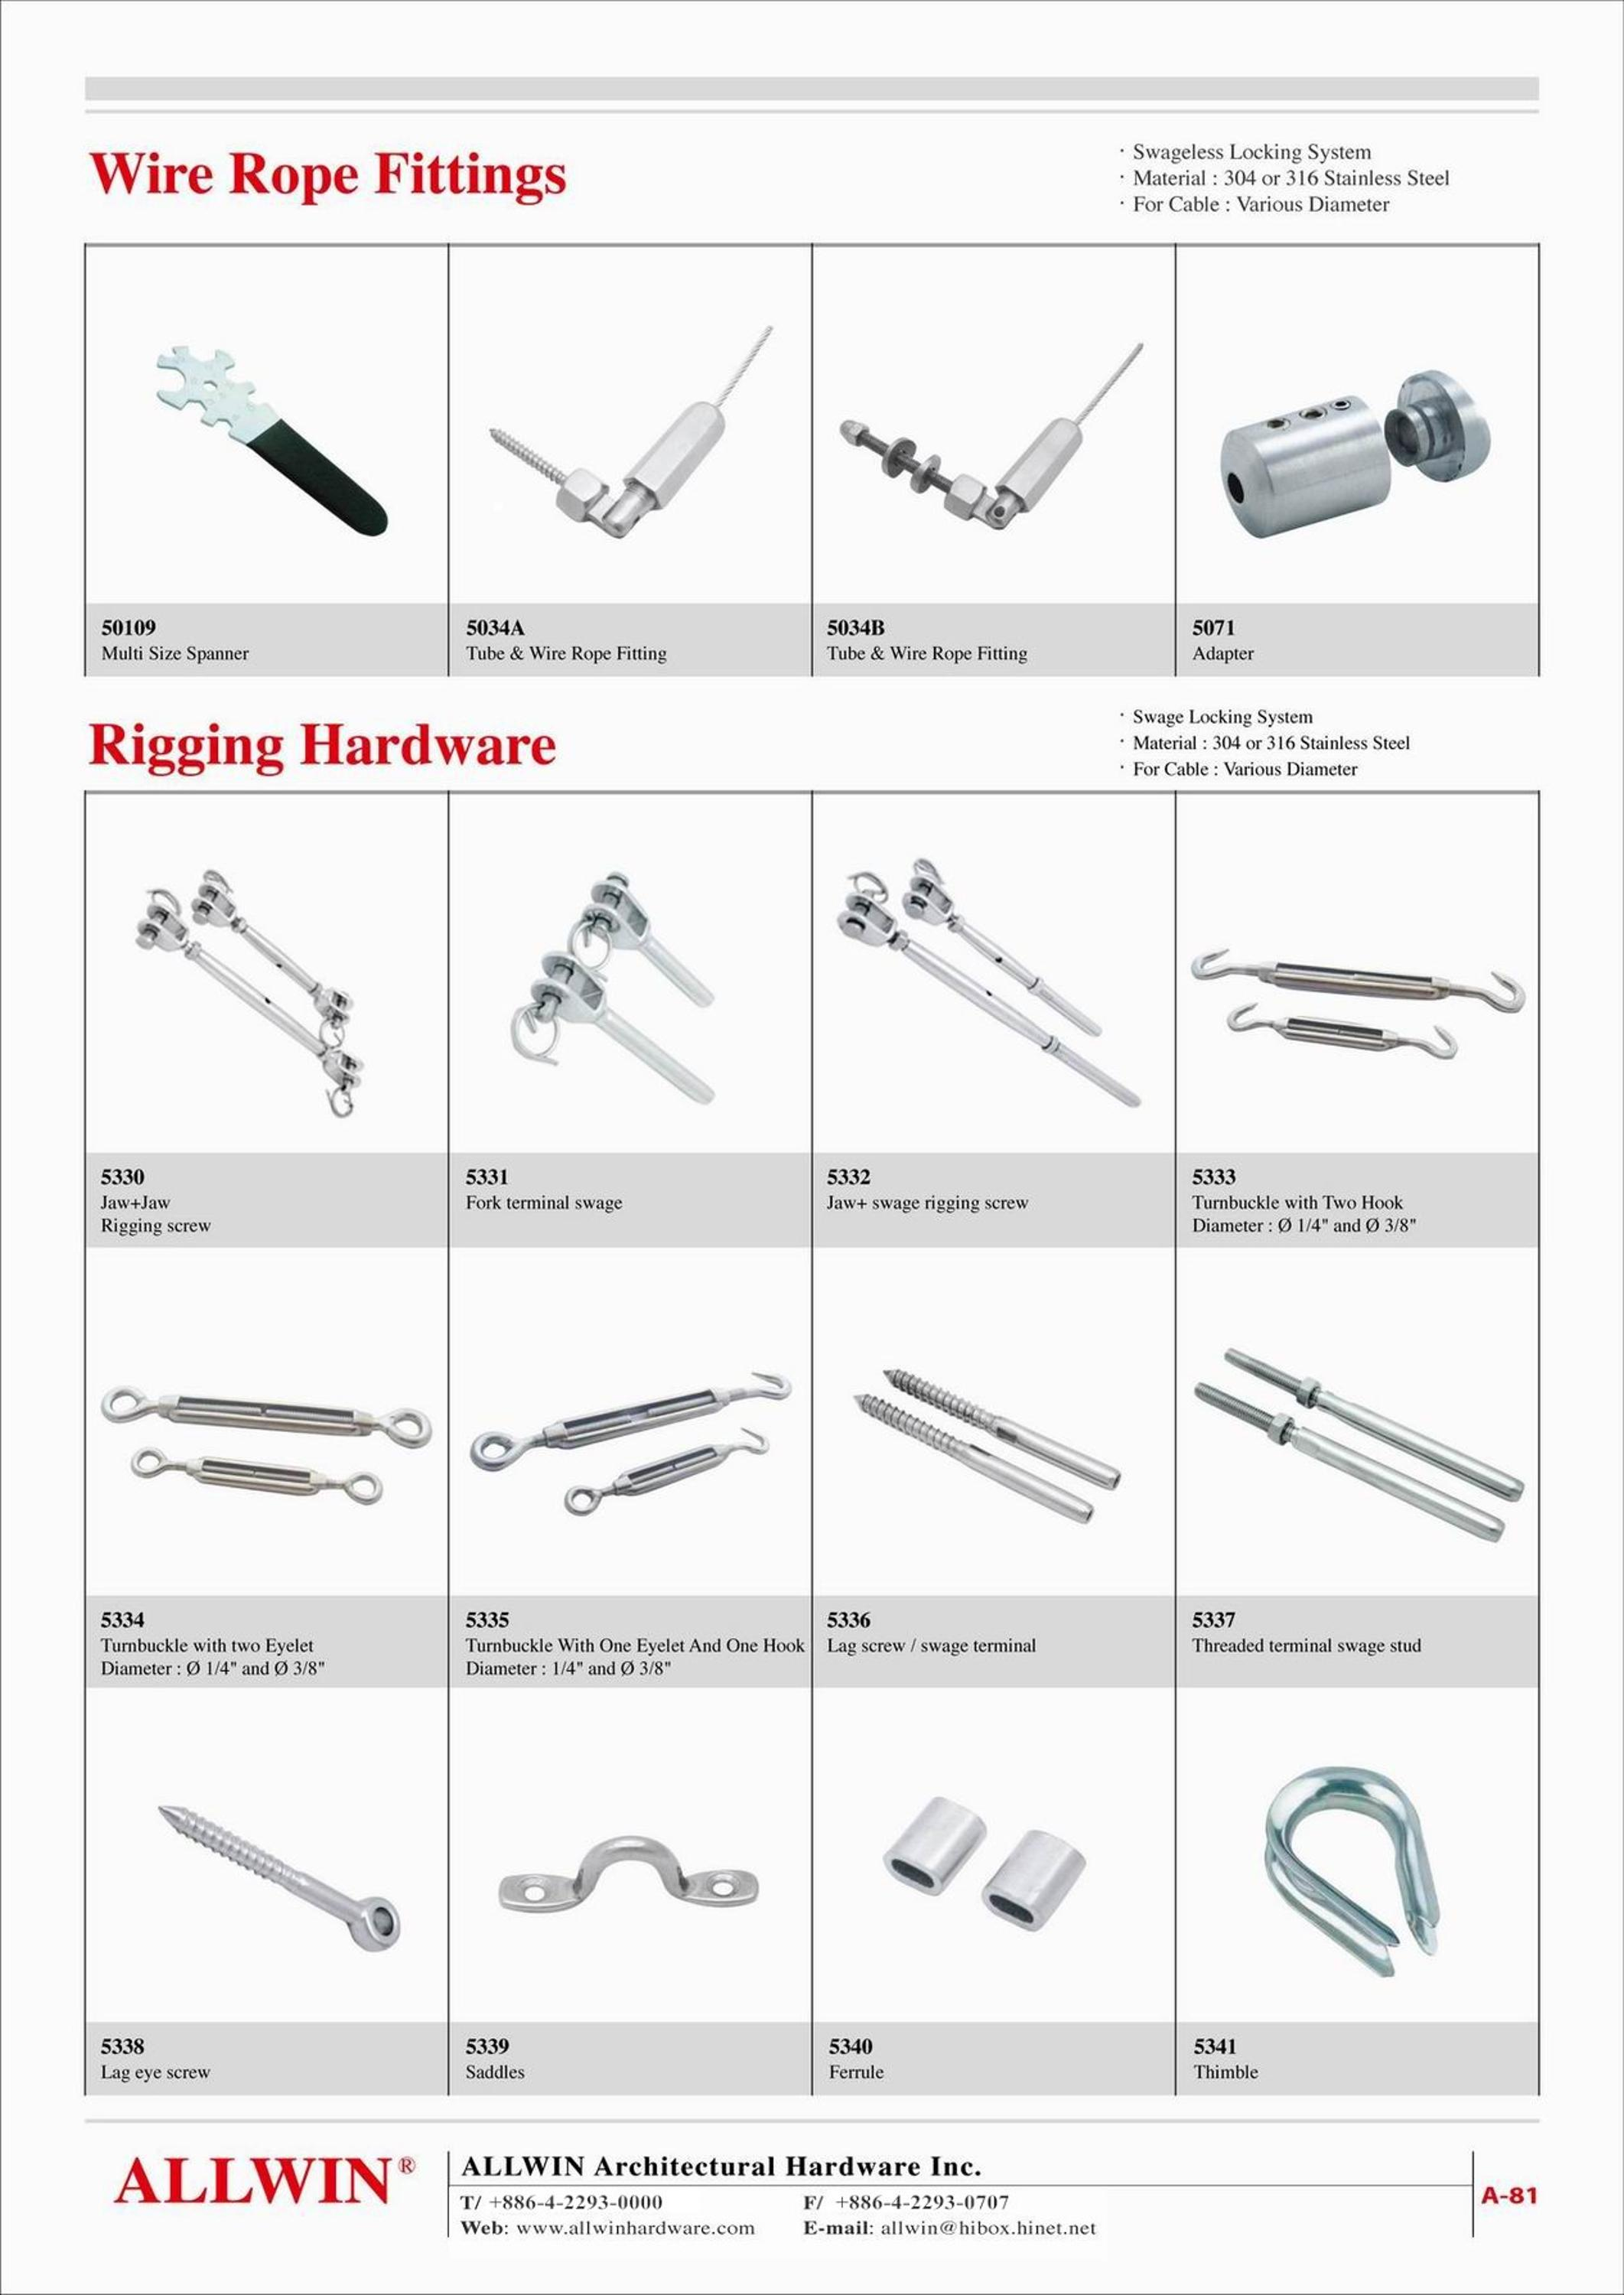 Stainless Steel Threaded End Terminal Rigging Swageless Wire Rope ...